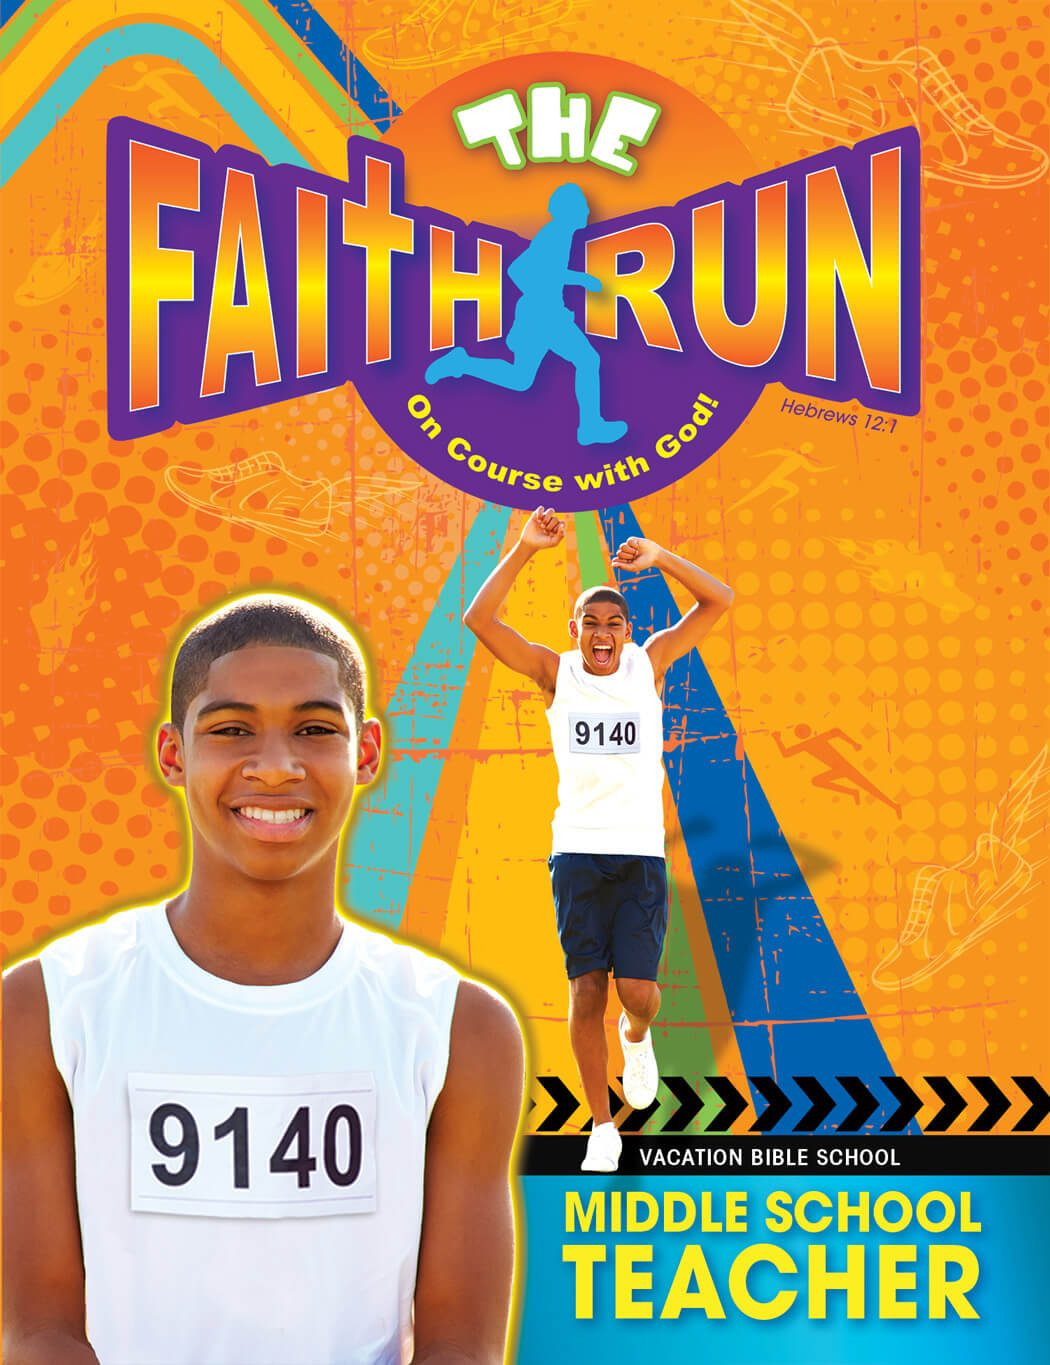 VBS The Faith Run Middle School Teacher 2017